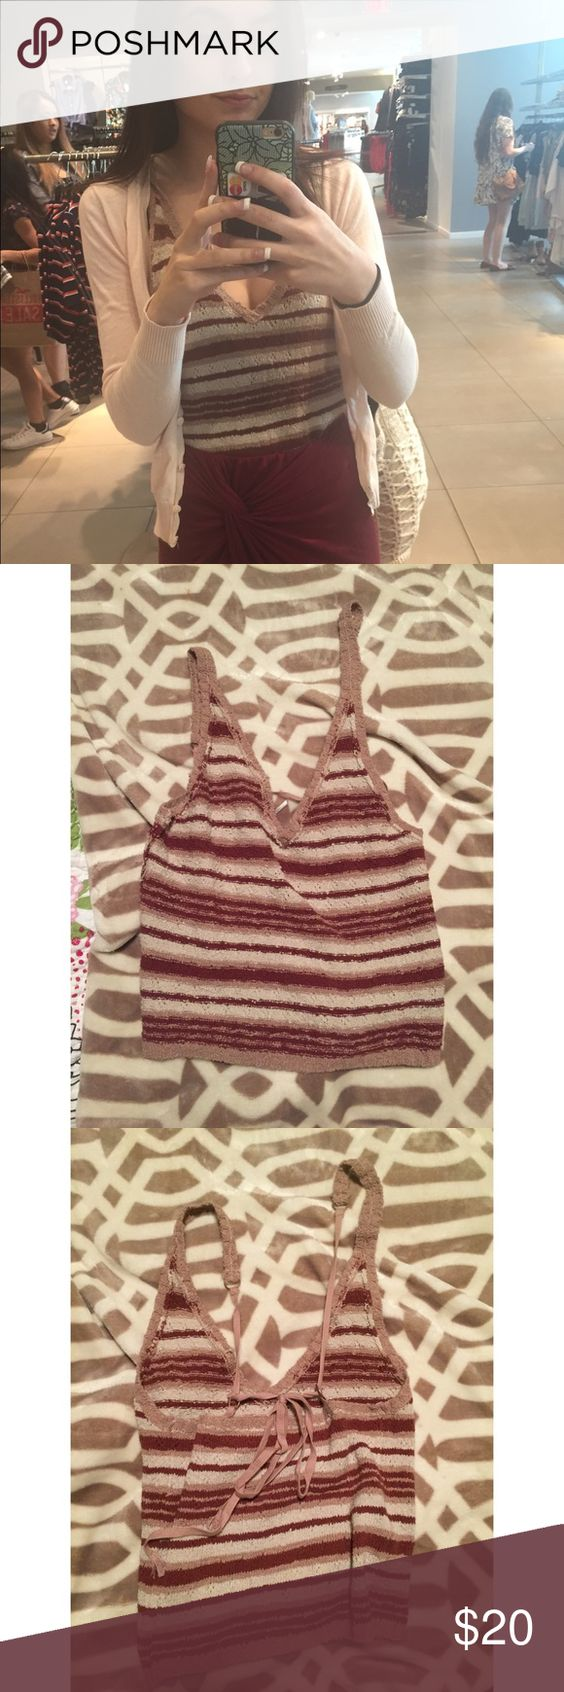 Free People Crochet Tank Worn once, too low cut for me! Free People Tops Tank Tops